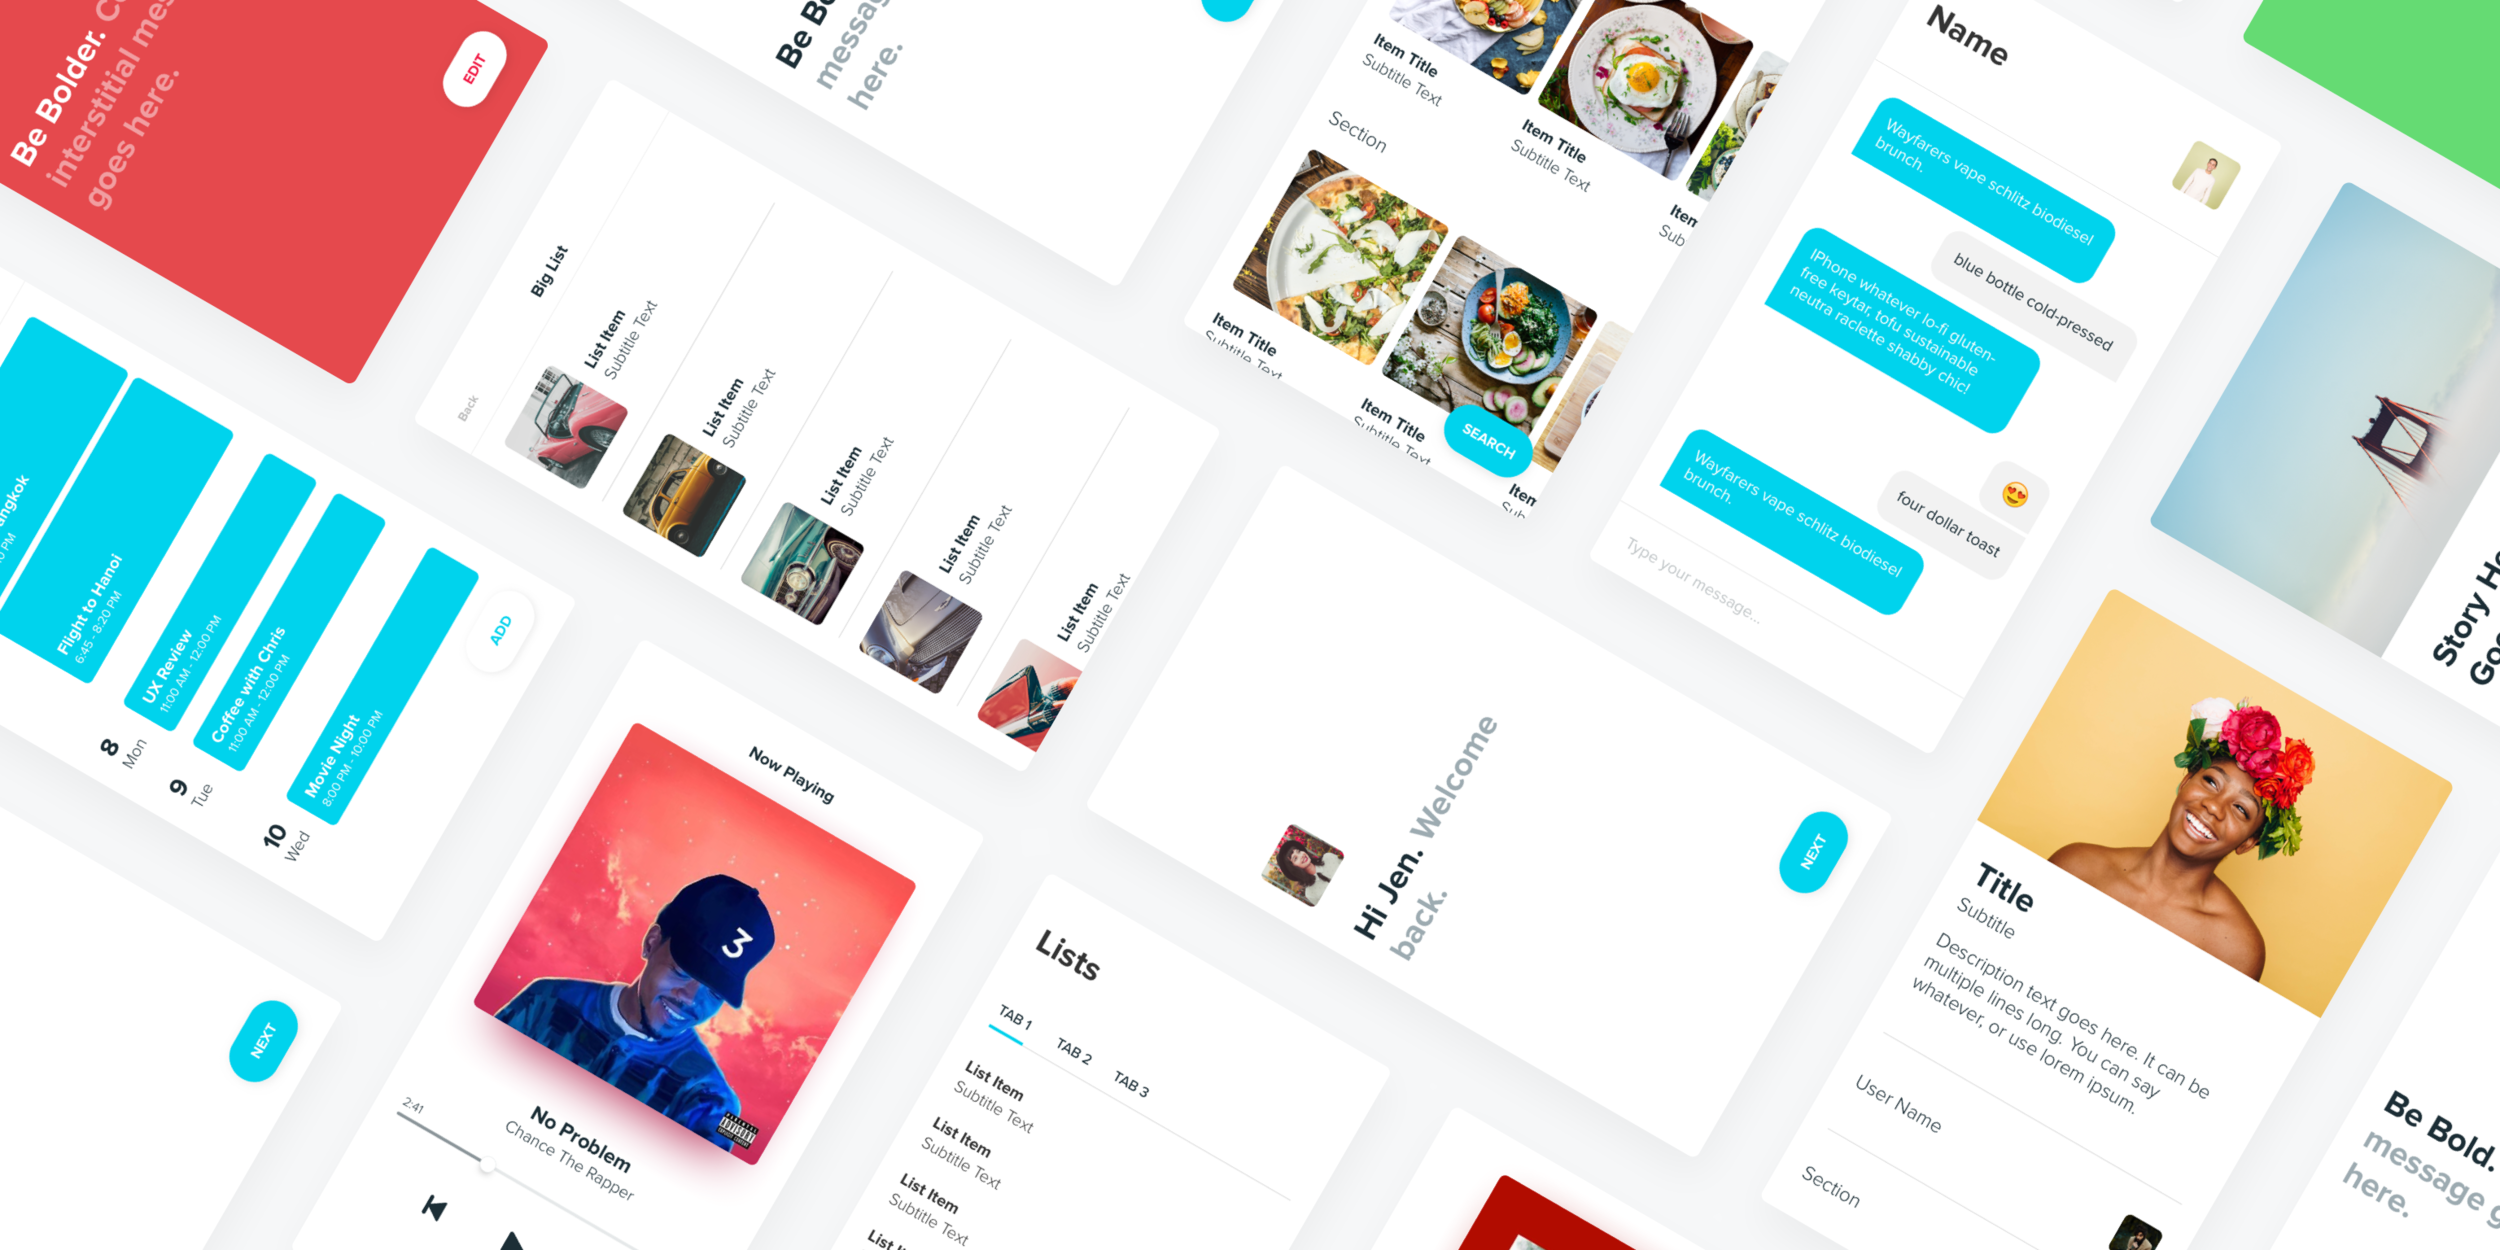 Design better apps in less time. - Blox UI Kit is a performance enhancing drug for designers.